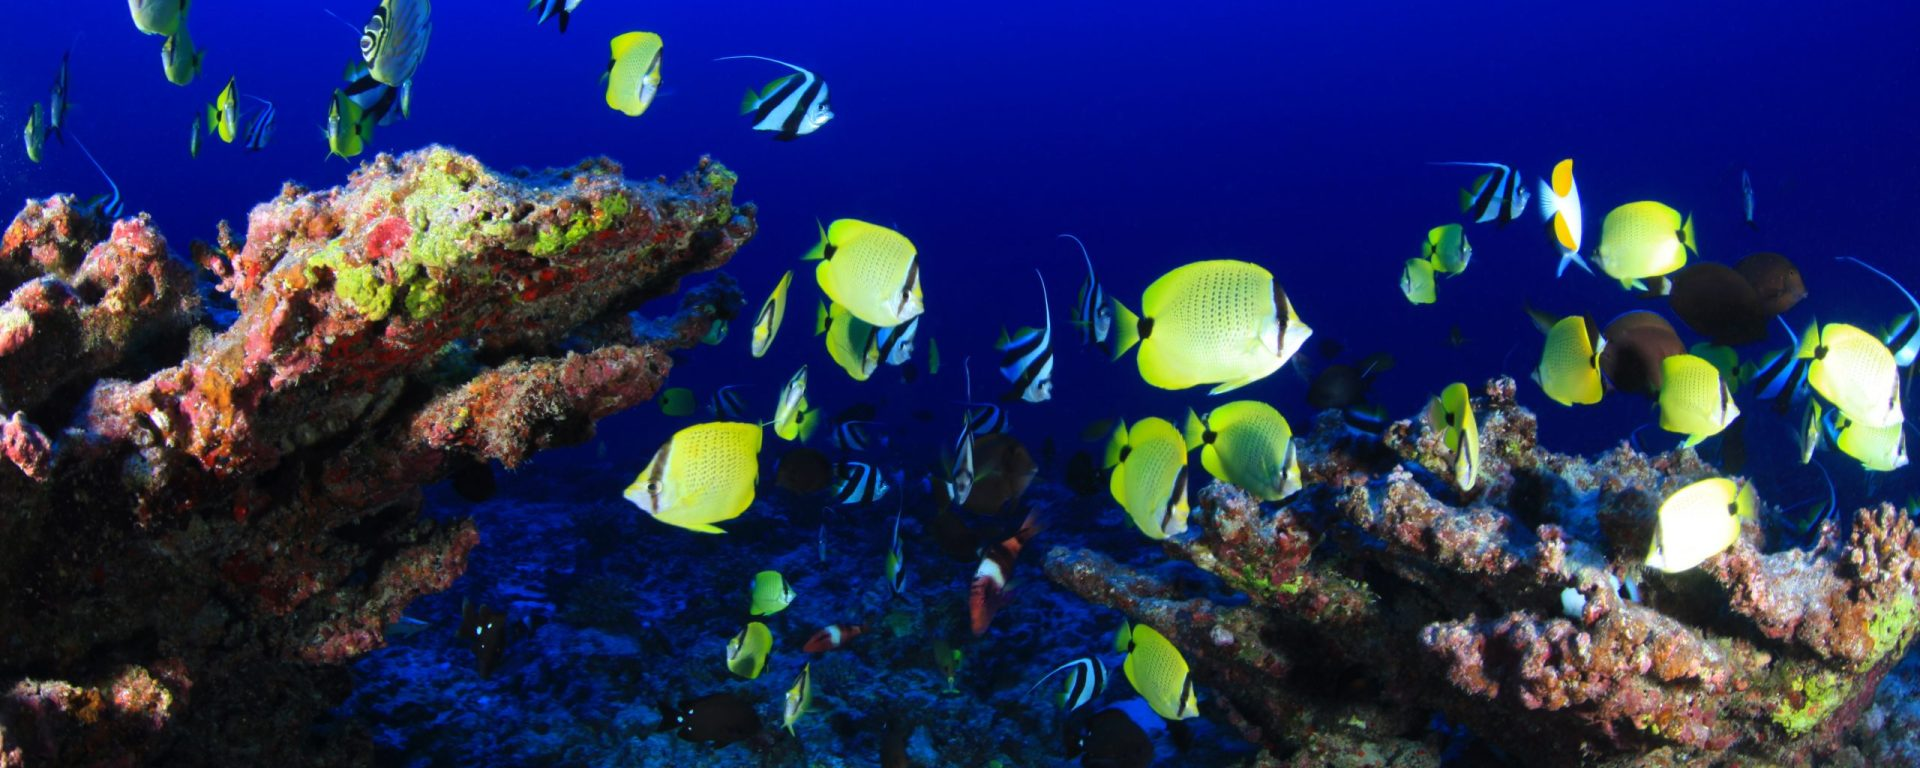 Finding Nemo Cover Songs   Switching Styles   Music   Online Publication  